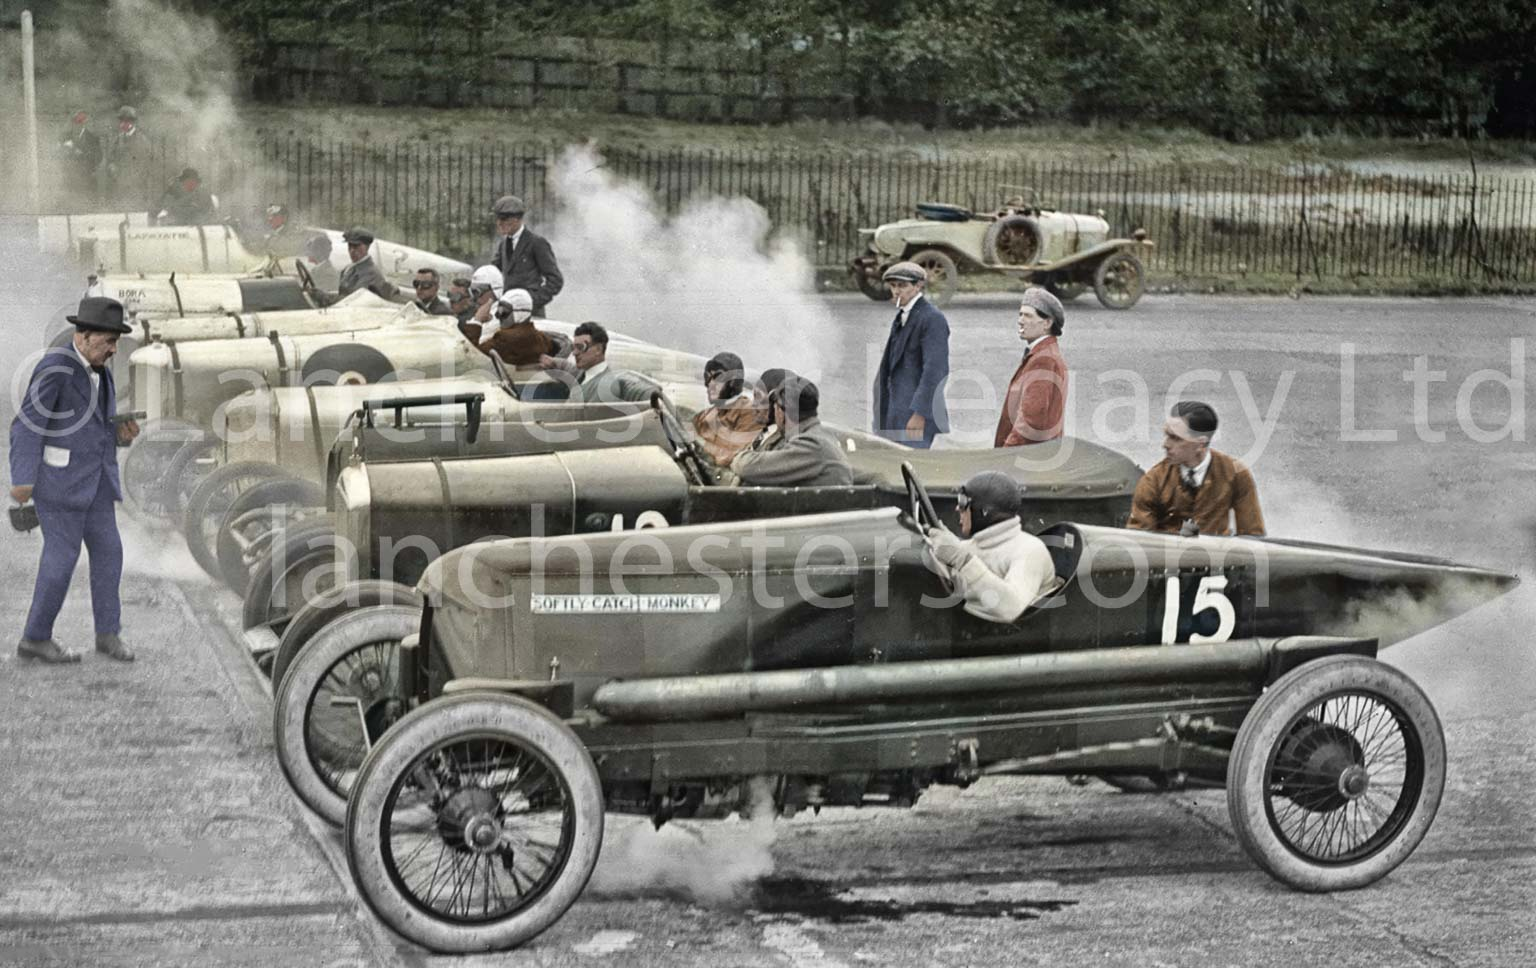 Lanchester 25hp 'Softly Softly' at Brooklands